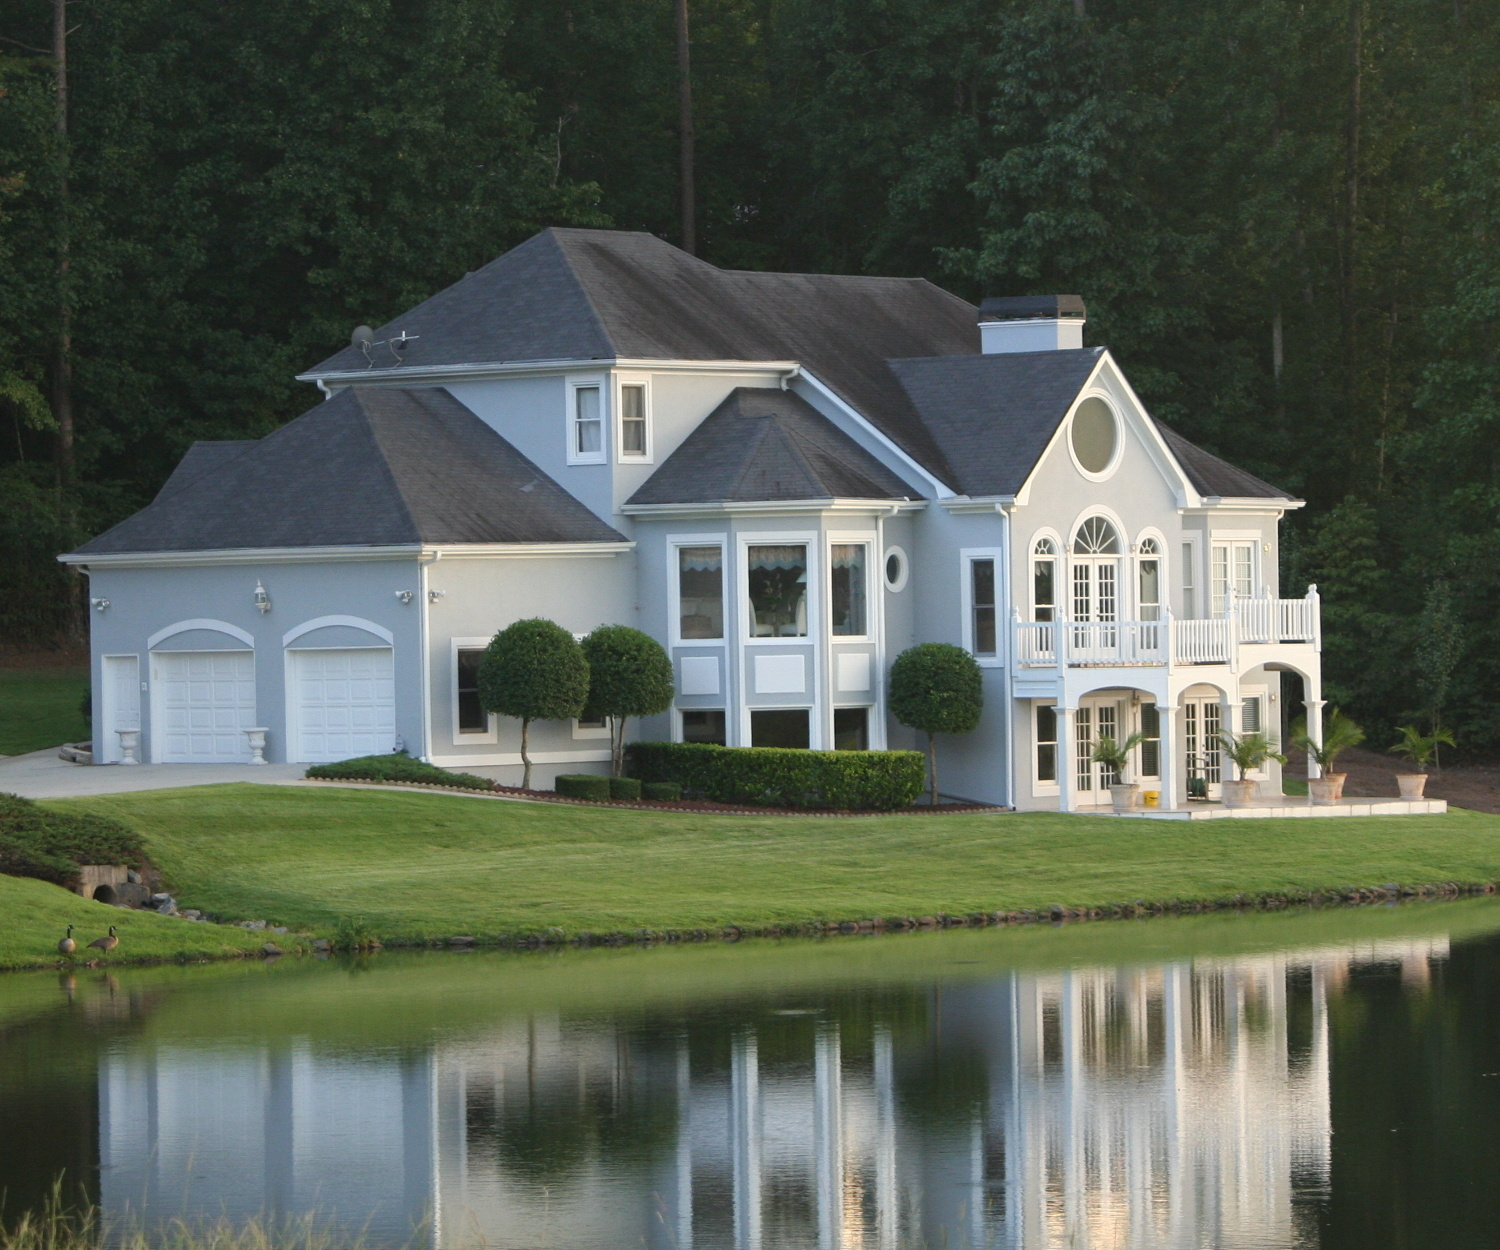 Lakefront Homes: 10 Of The MOST EXPENSIVE Tennessee Lake Homes